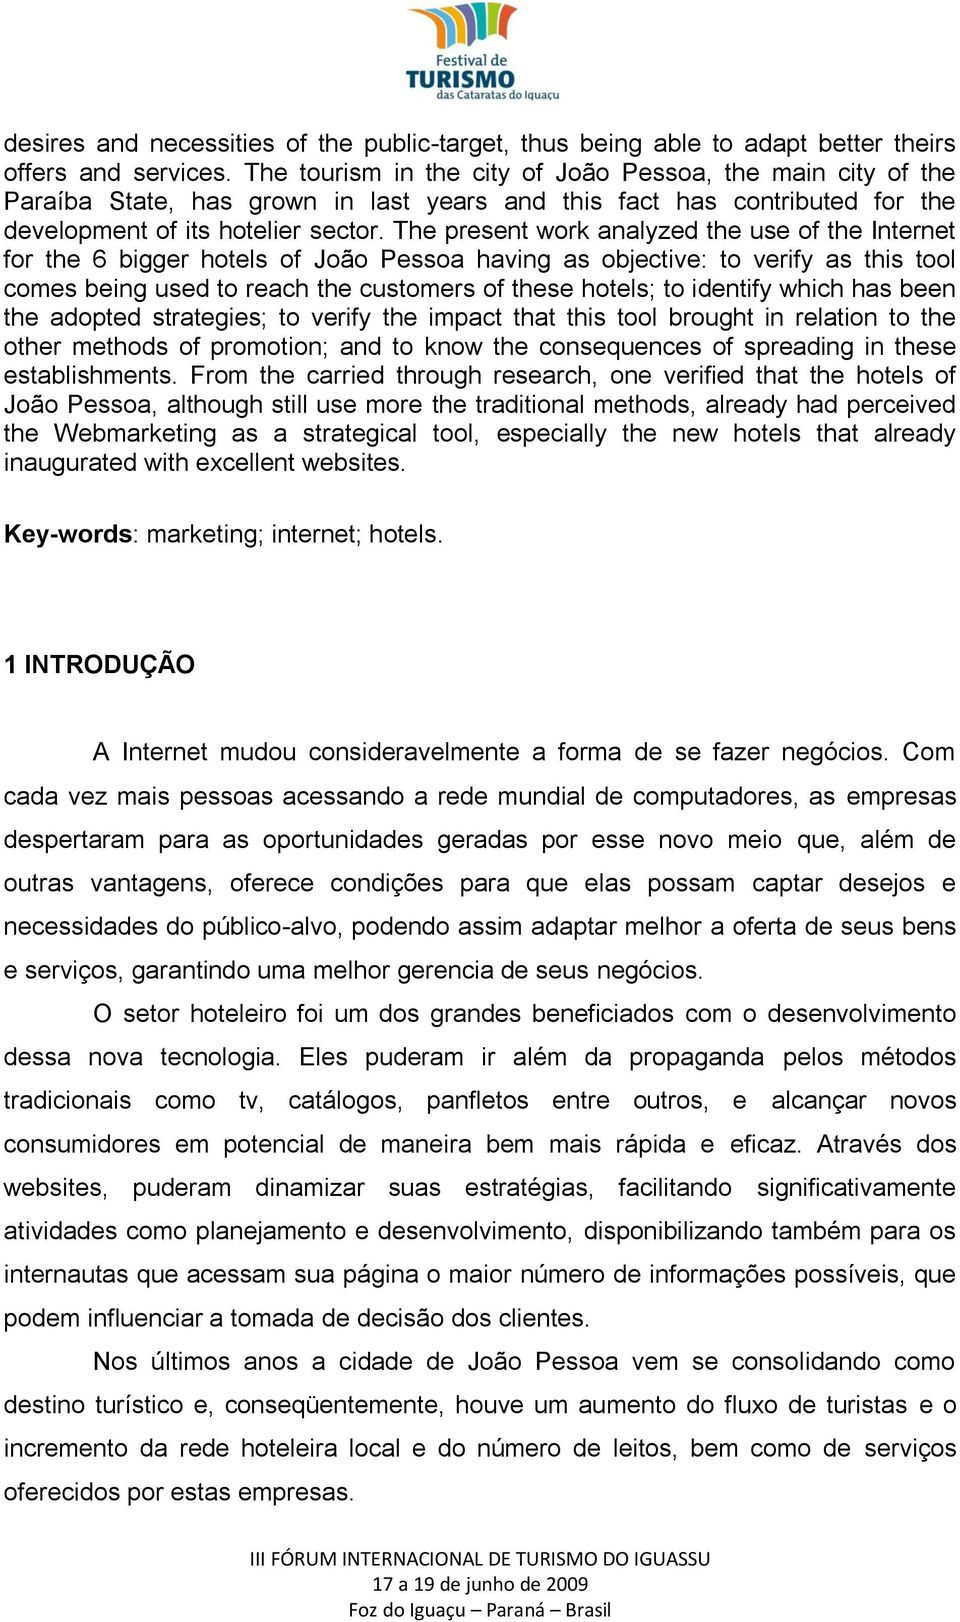 The present work analyzed the use of the Internet for the 6 bigger hotels of João Pessoa having as objective: to verify as this tool comes being used to reach the customers of these hotels; to